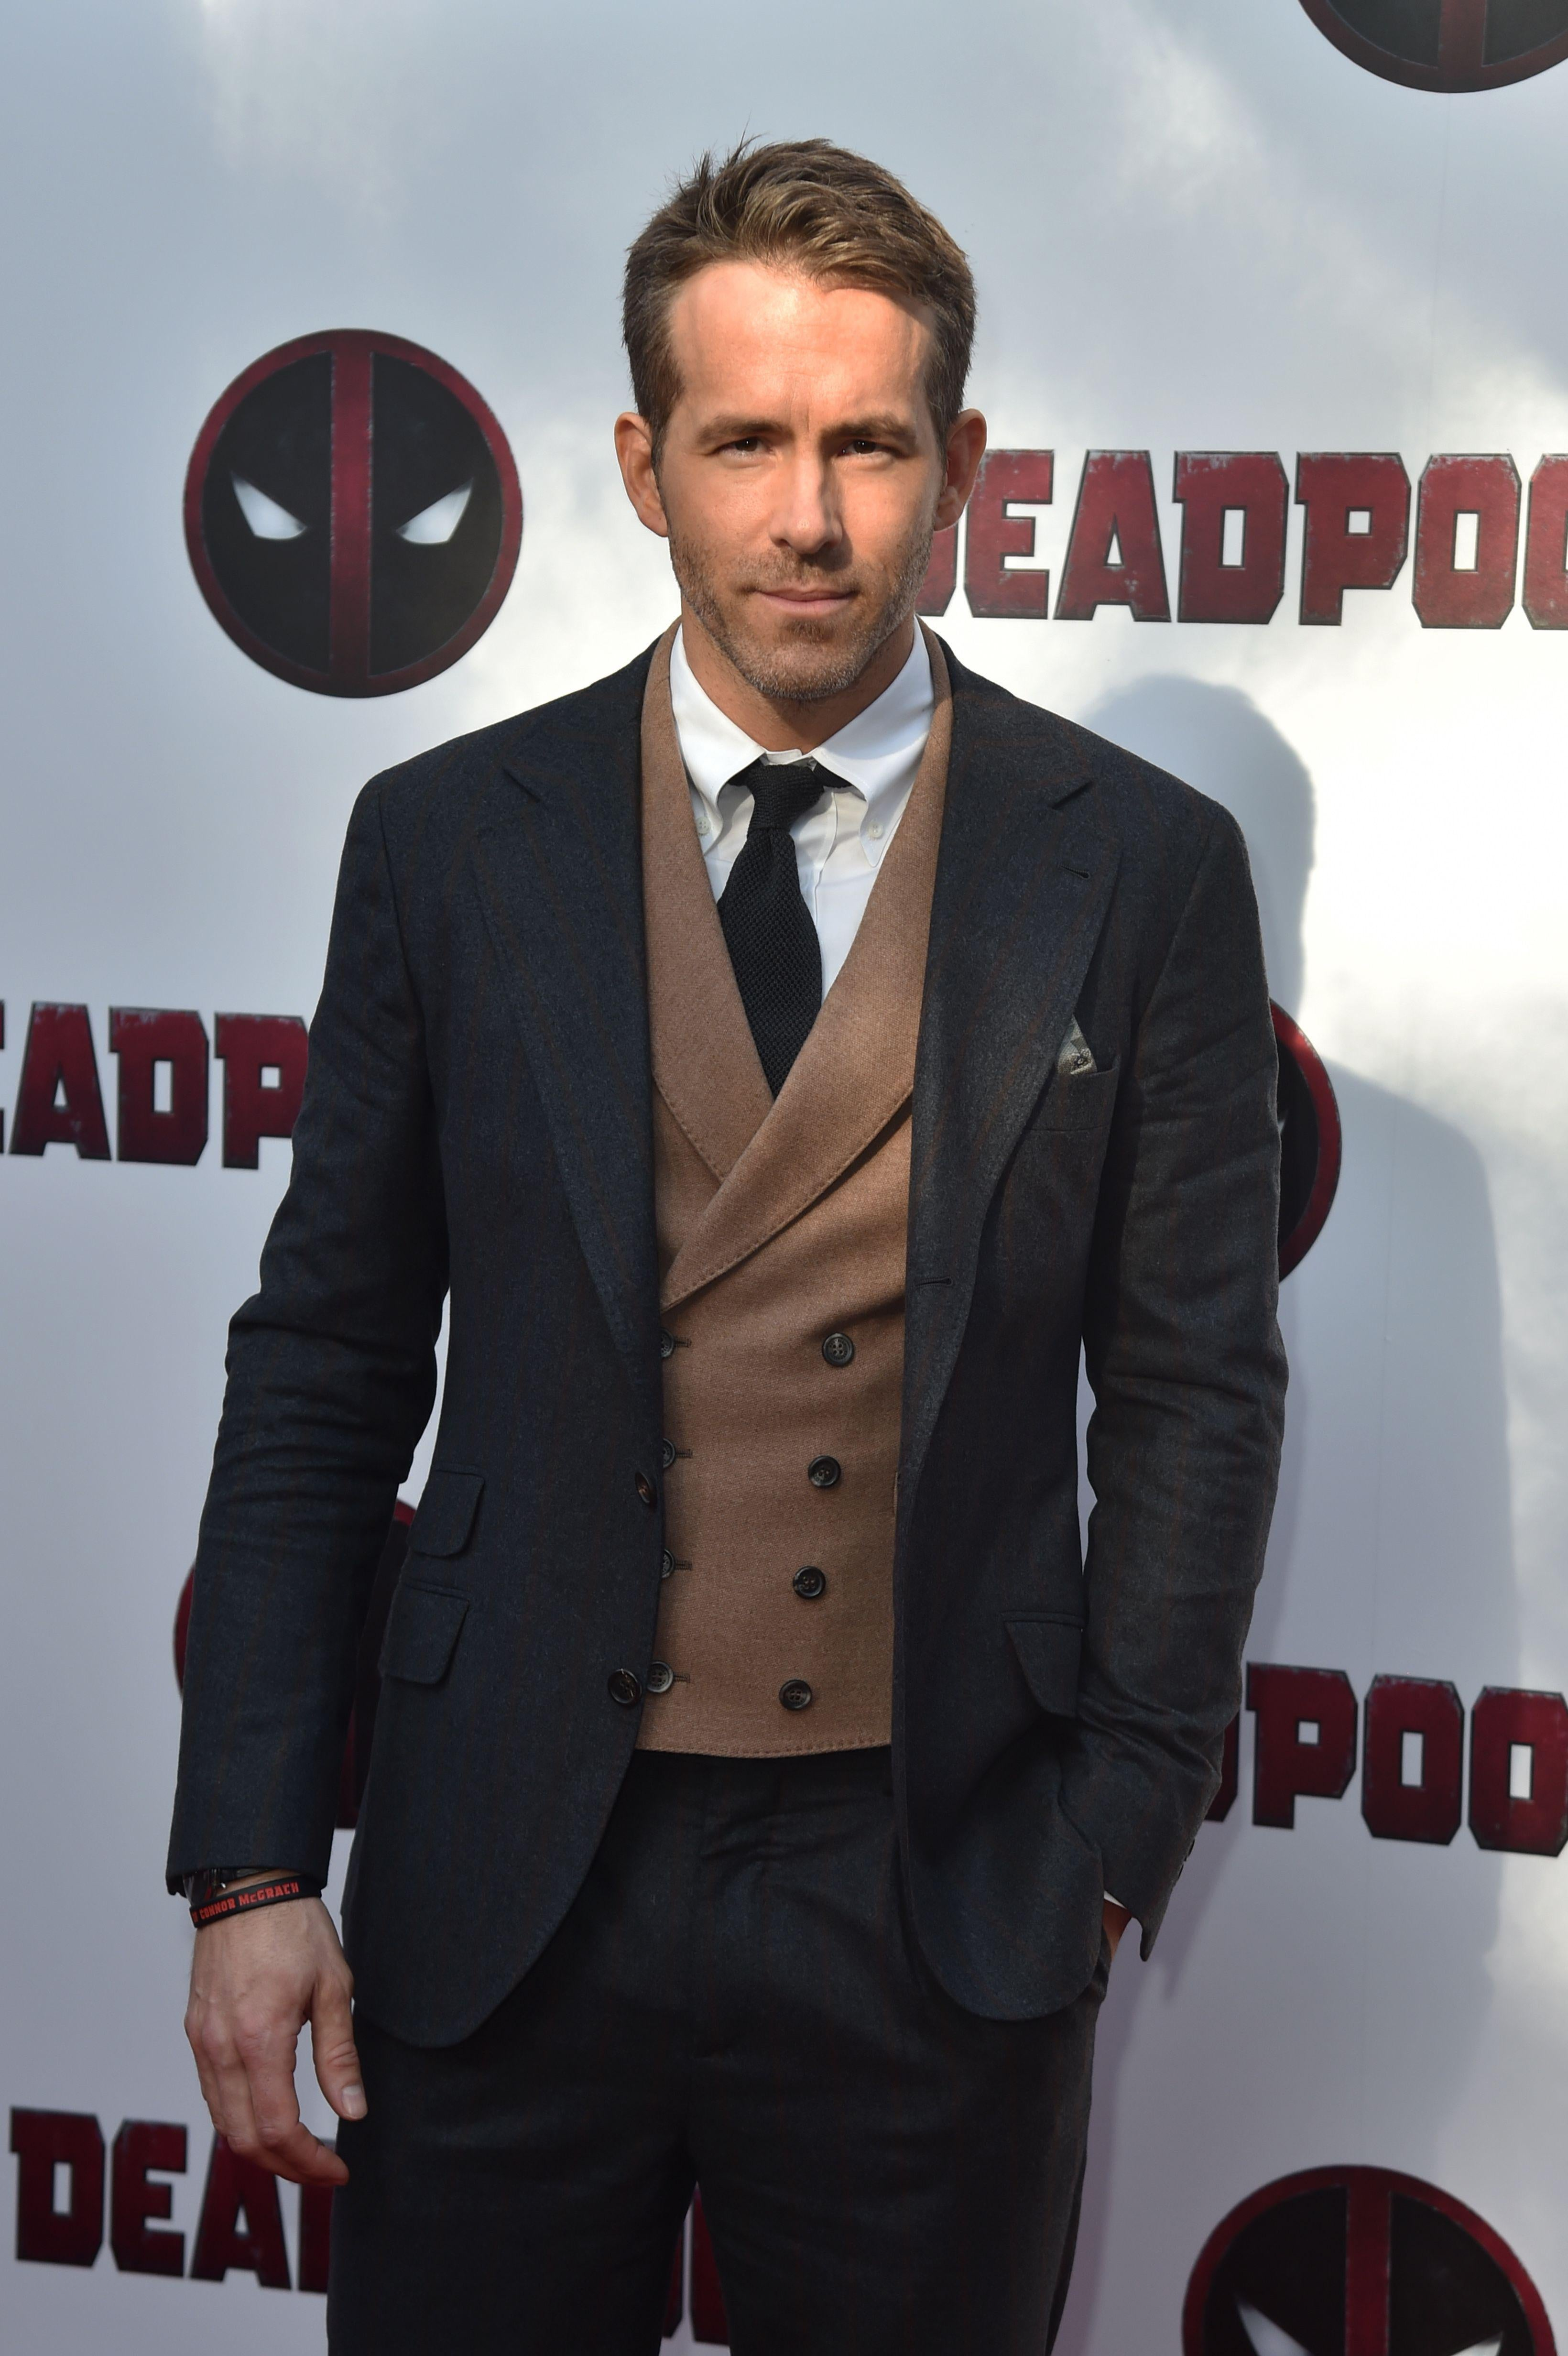 Actor Ryan Reynolds attends a speial screening of Deadpool 2 in New York City on May 14, 2018.